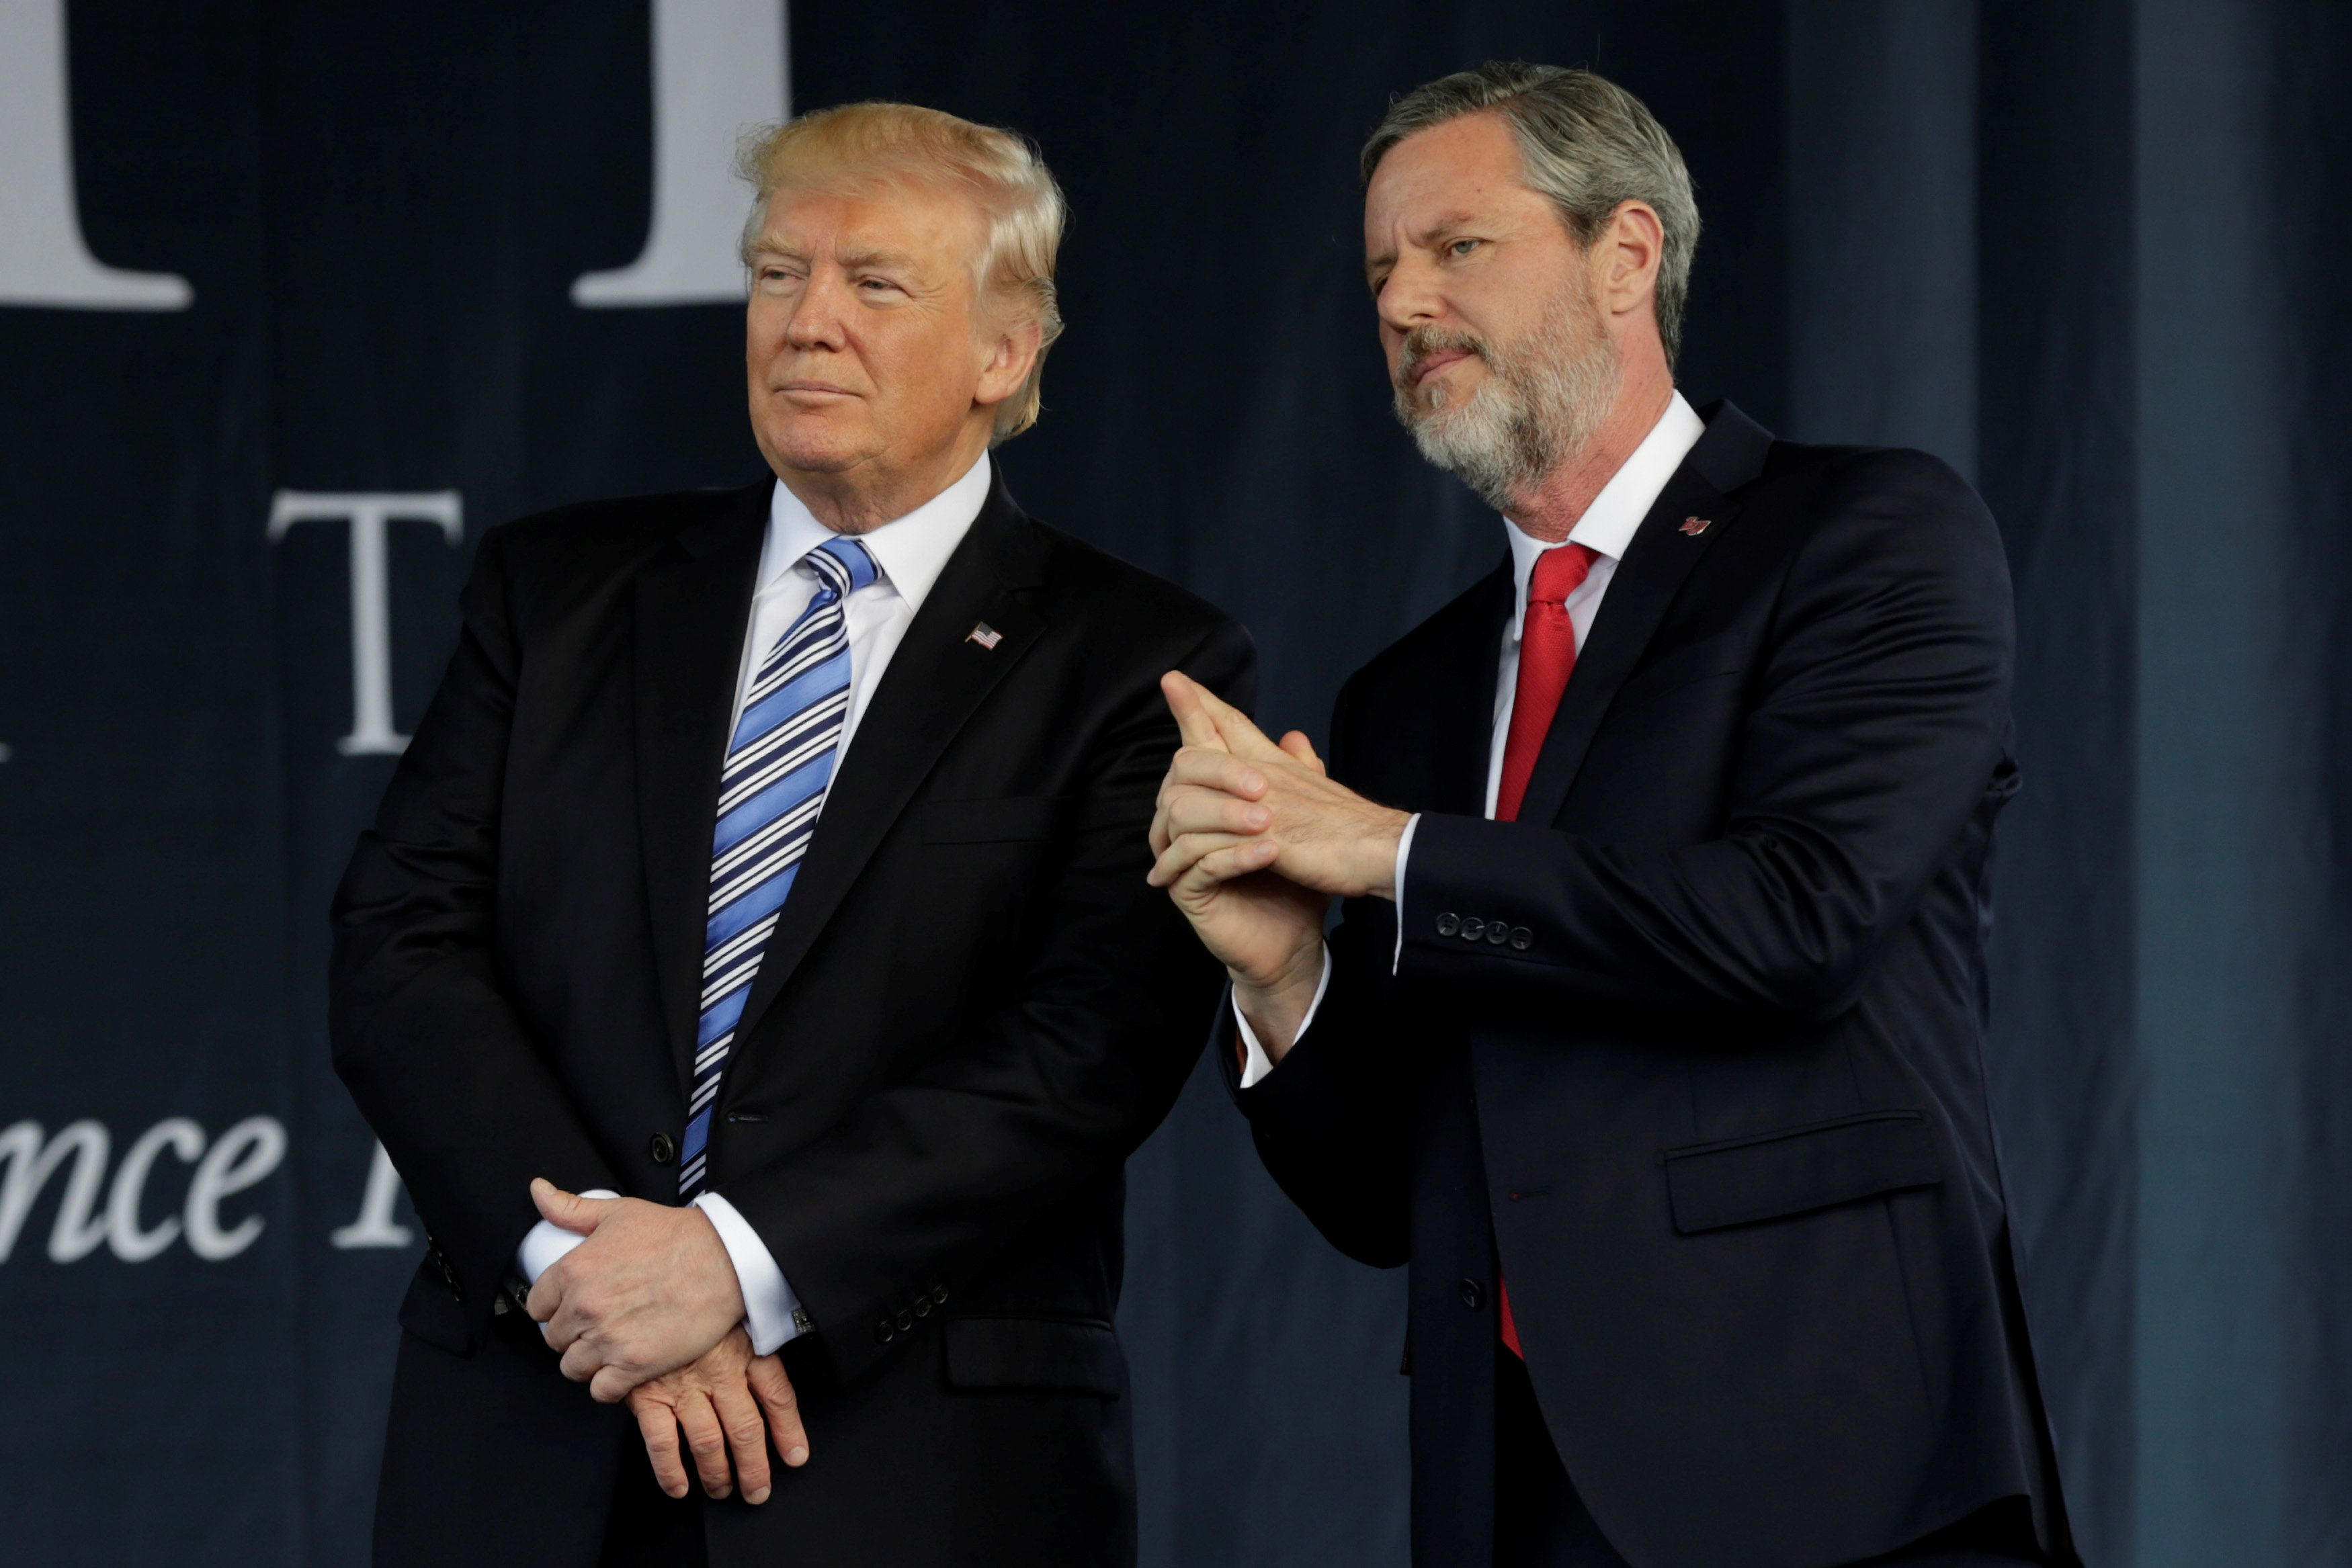 President Donald Trump stands with Liberty University's President Jerry Falwell Jr. after delivering a commencement speech th